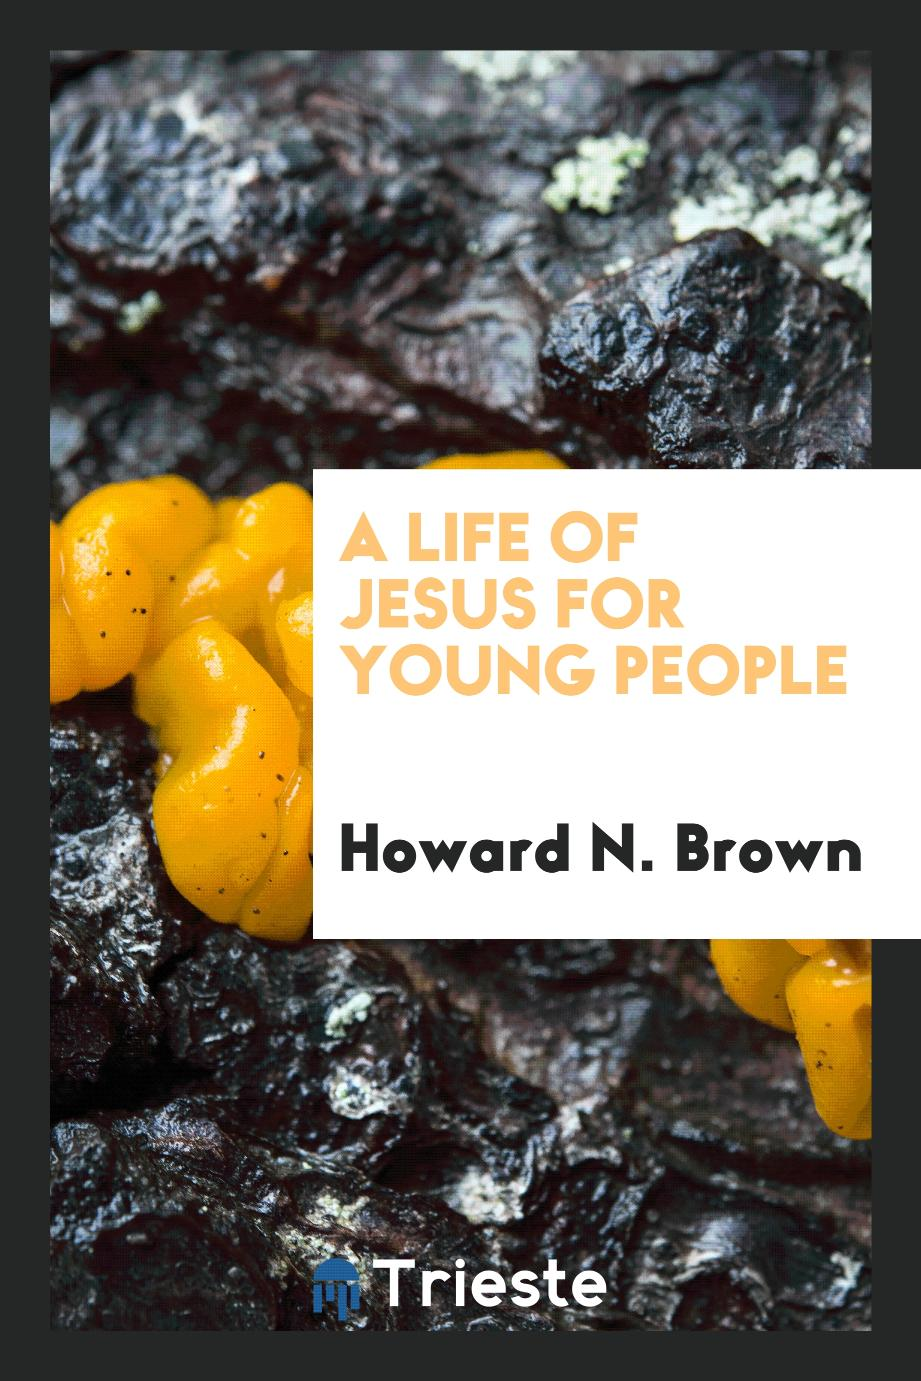 A Life of Jesus for Young People